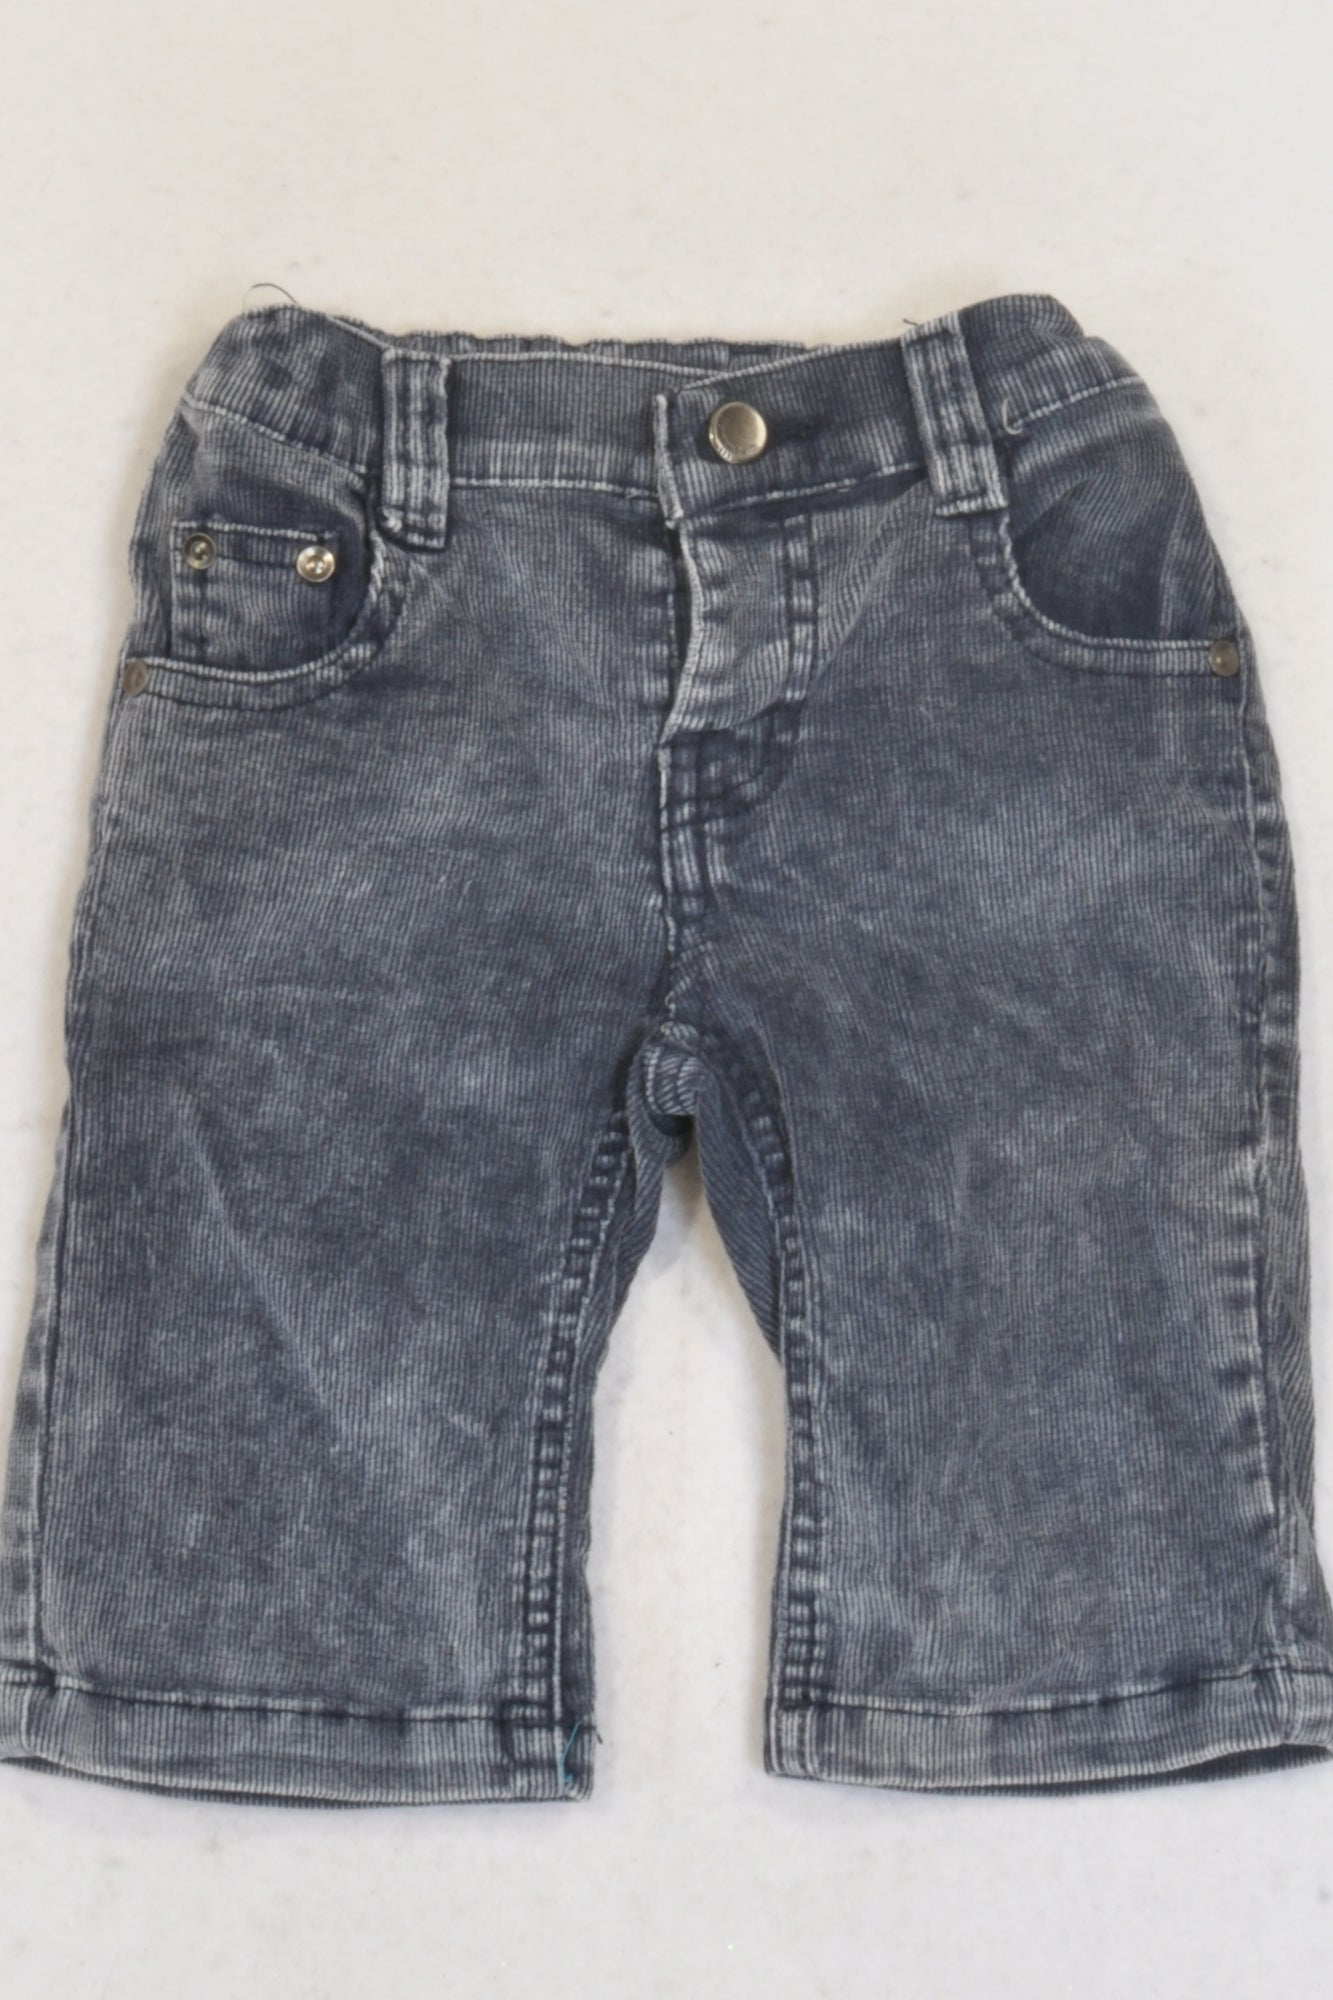 Blue & White Heathered Corduroy Pants Boys 3-6 months